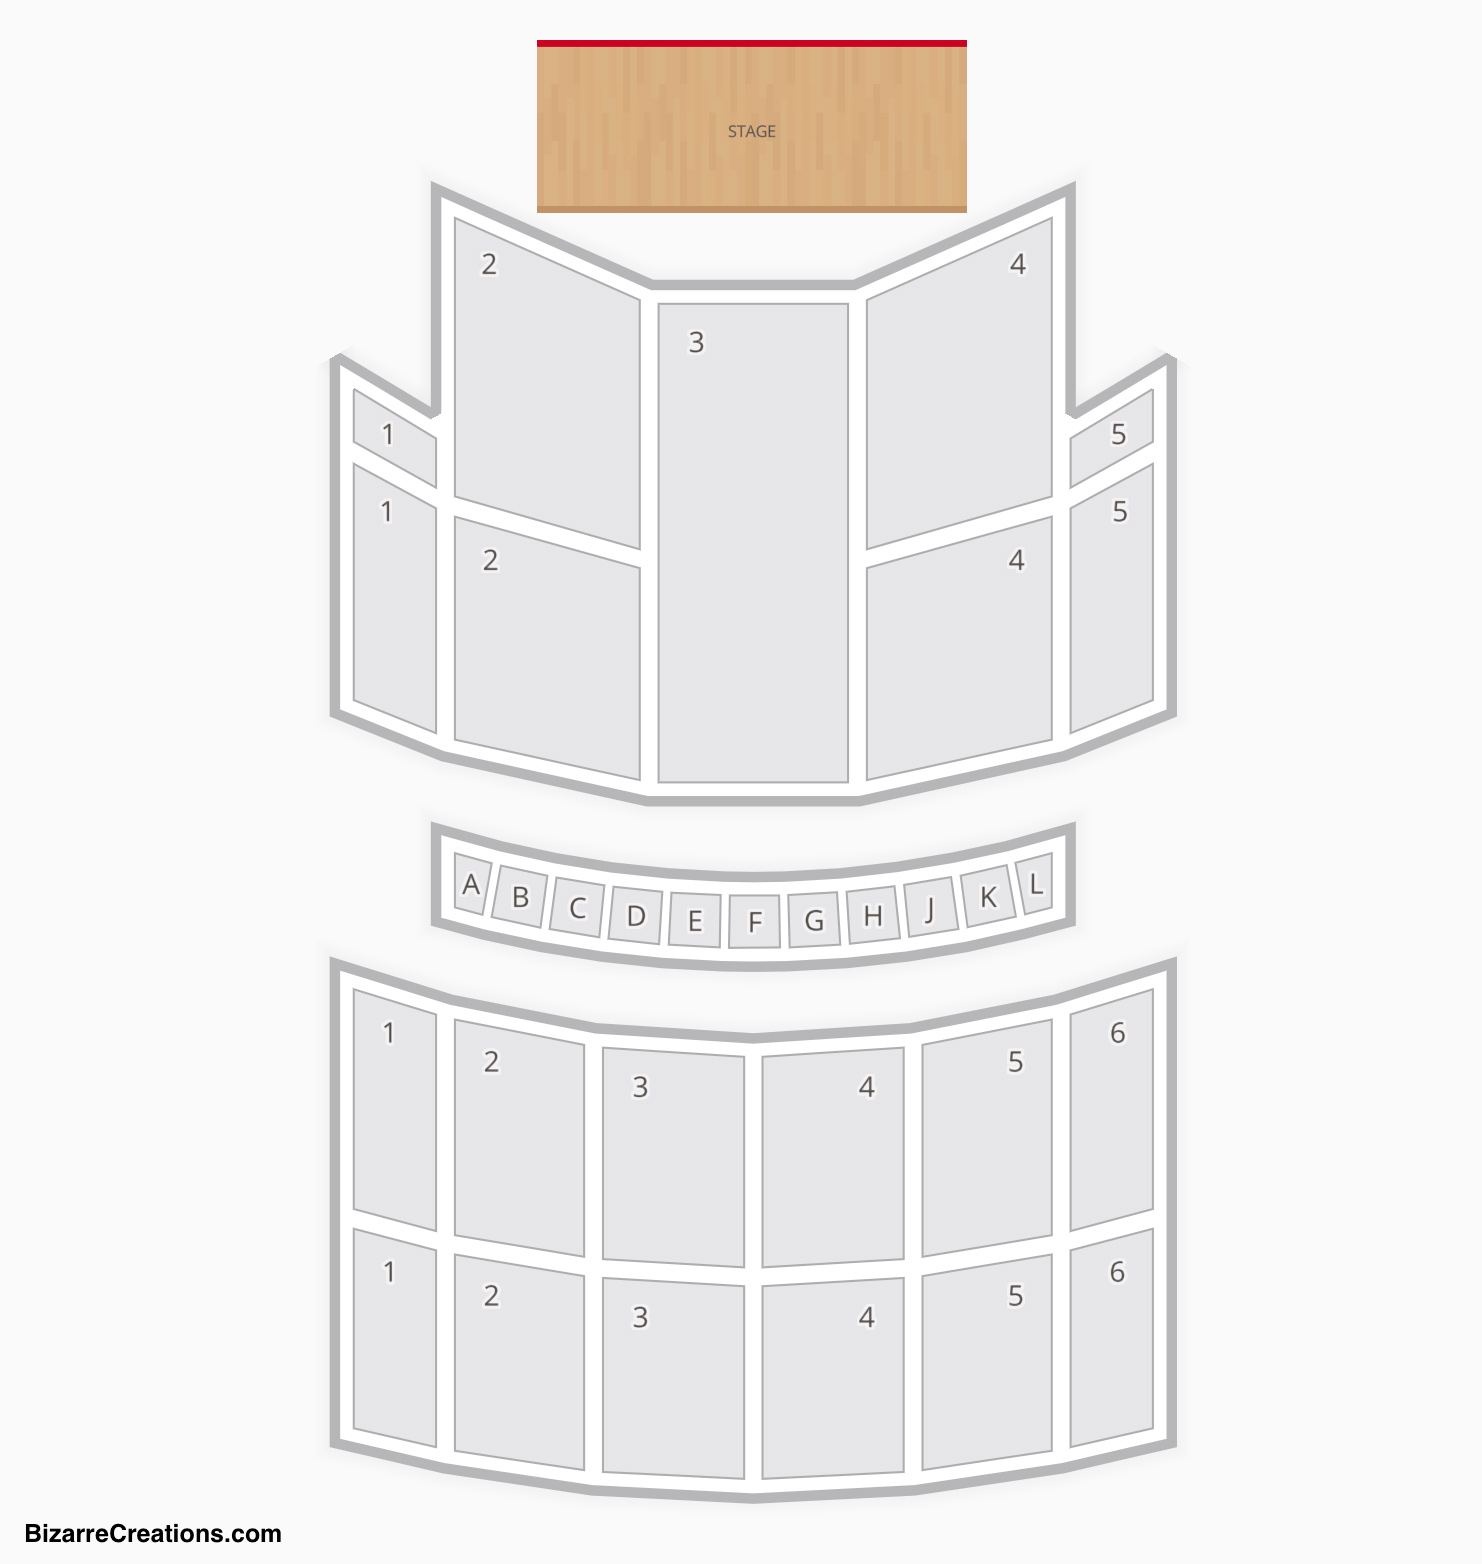 Taft Theatre Seating Chart Seating Charts Tickets